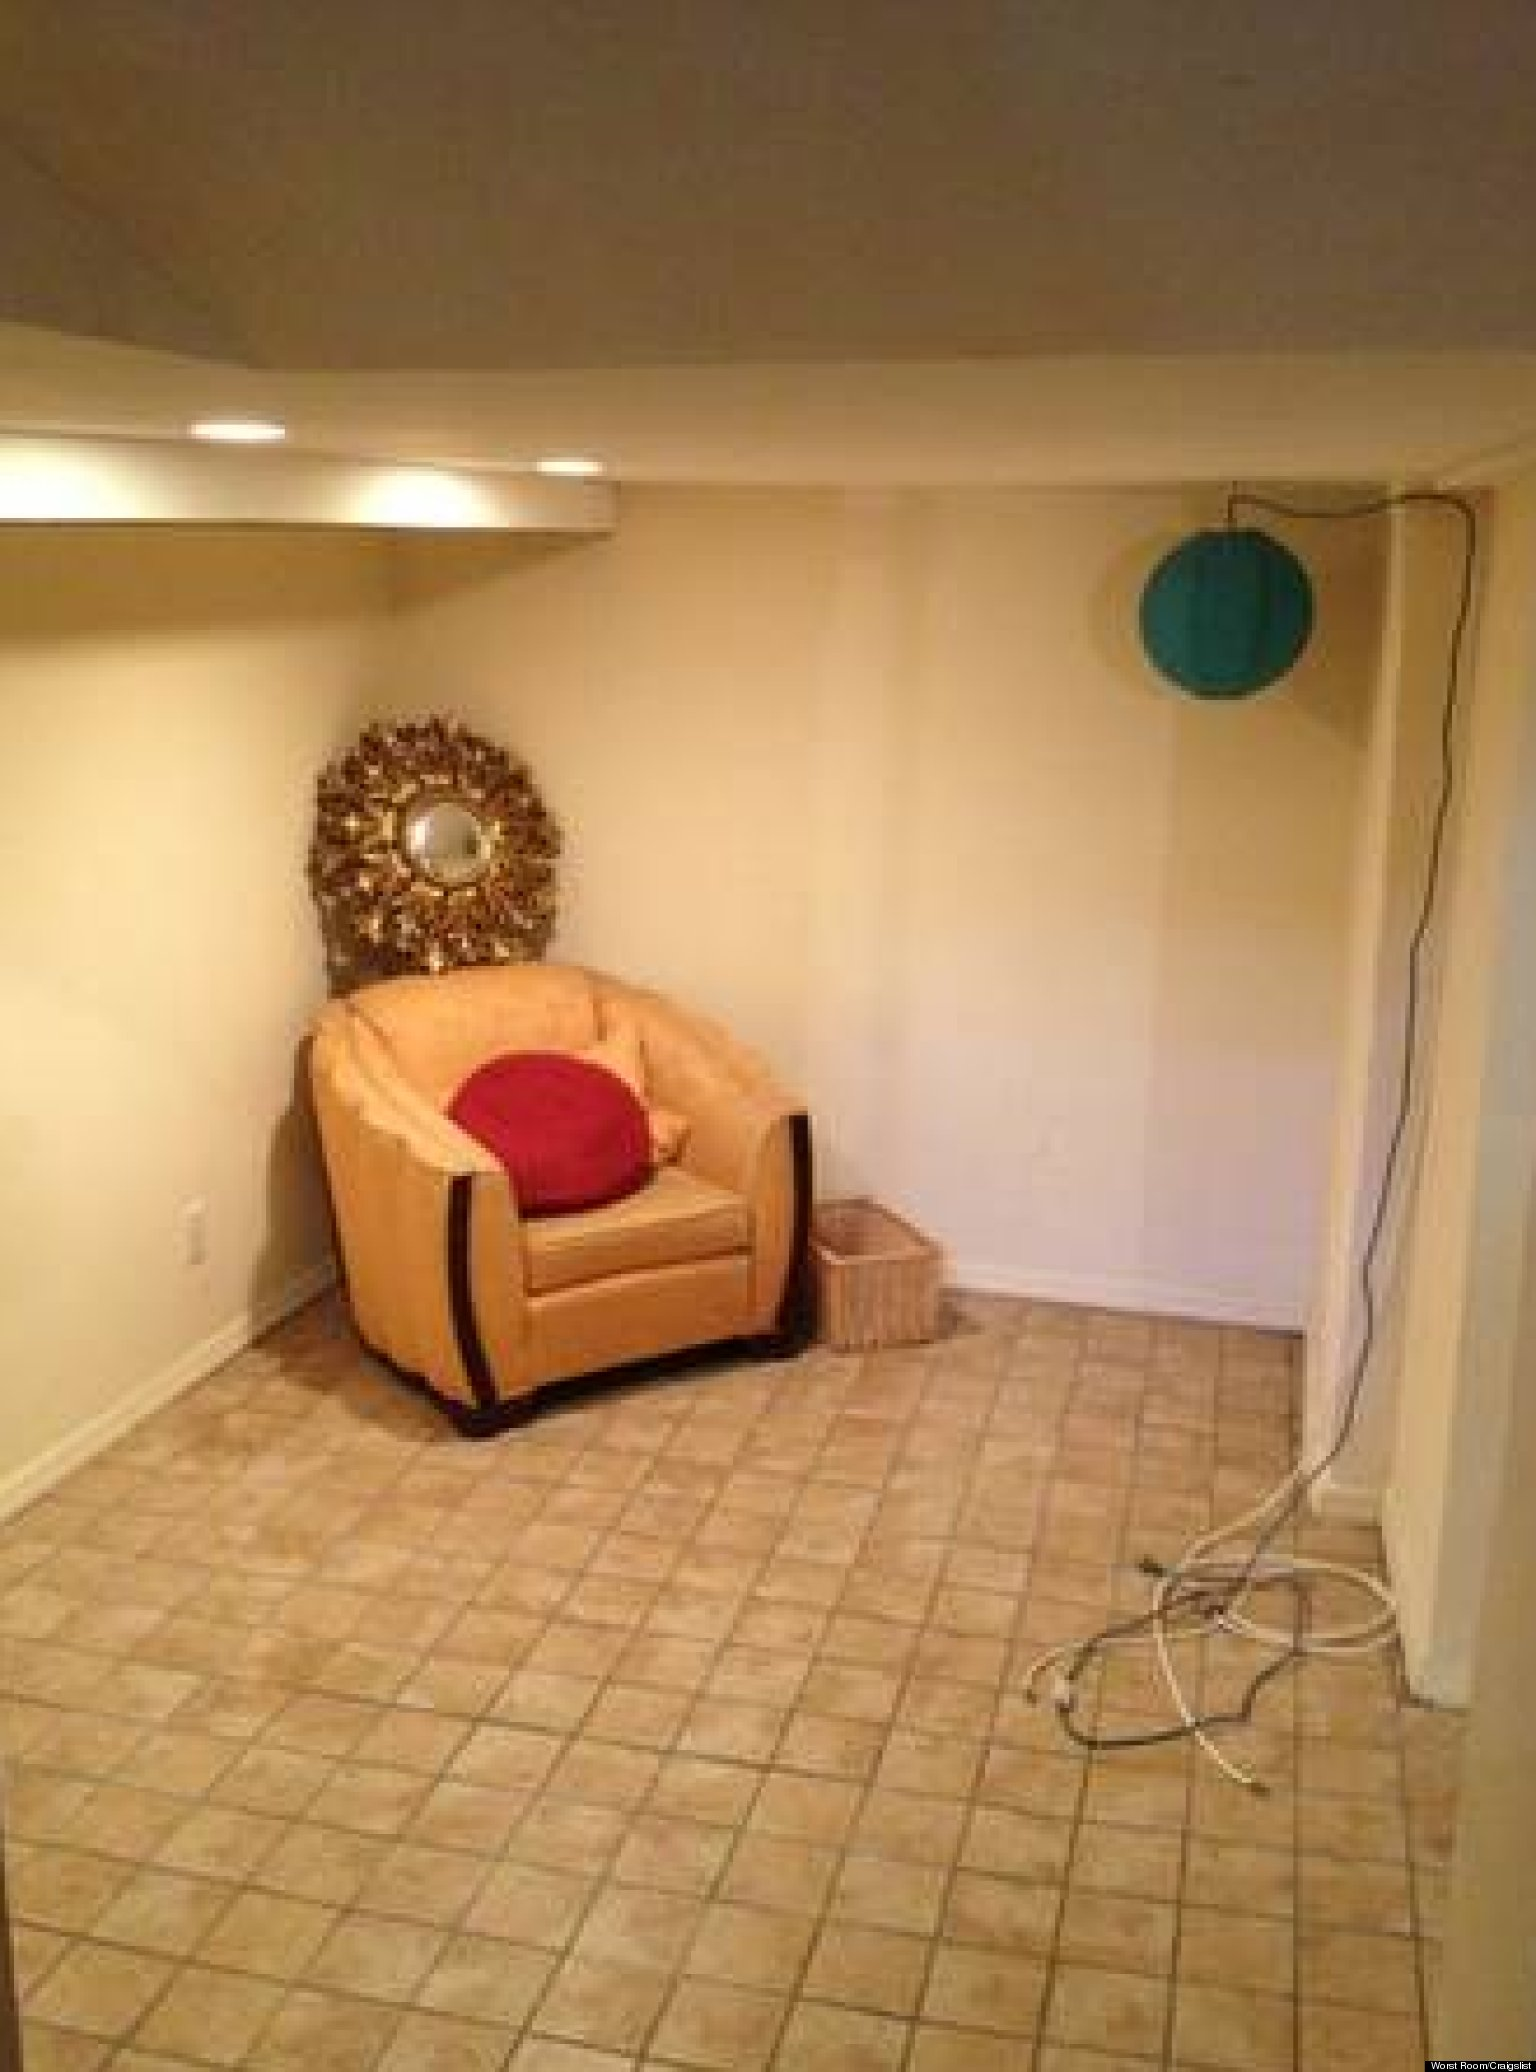 Worst Room Blog By Ryan Nethery Documents Absurd Nyc Apartments On Craigslist Photos